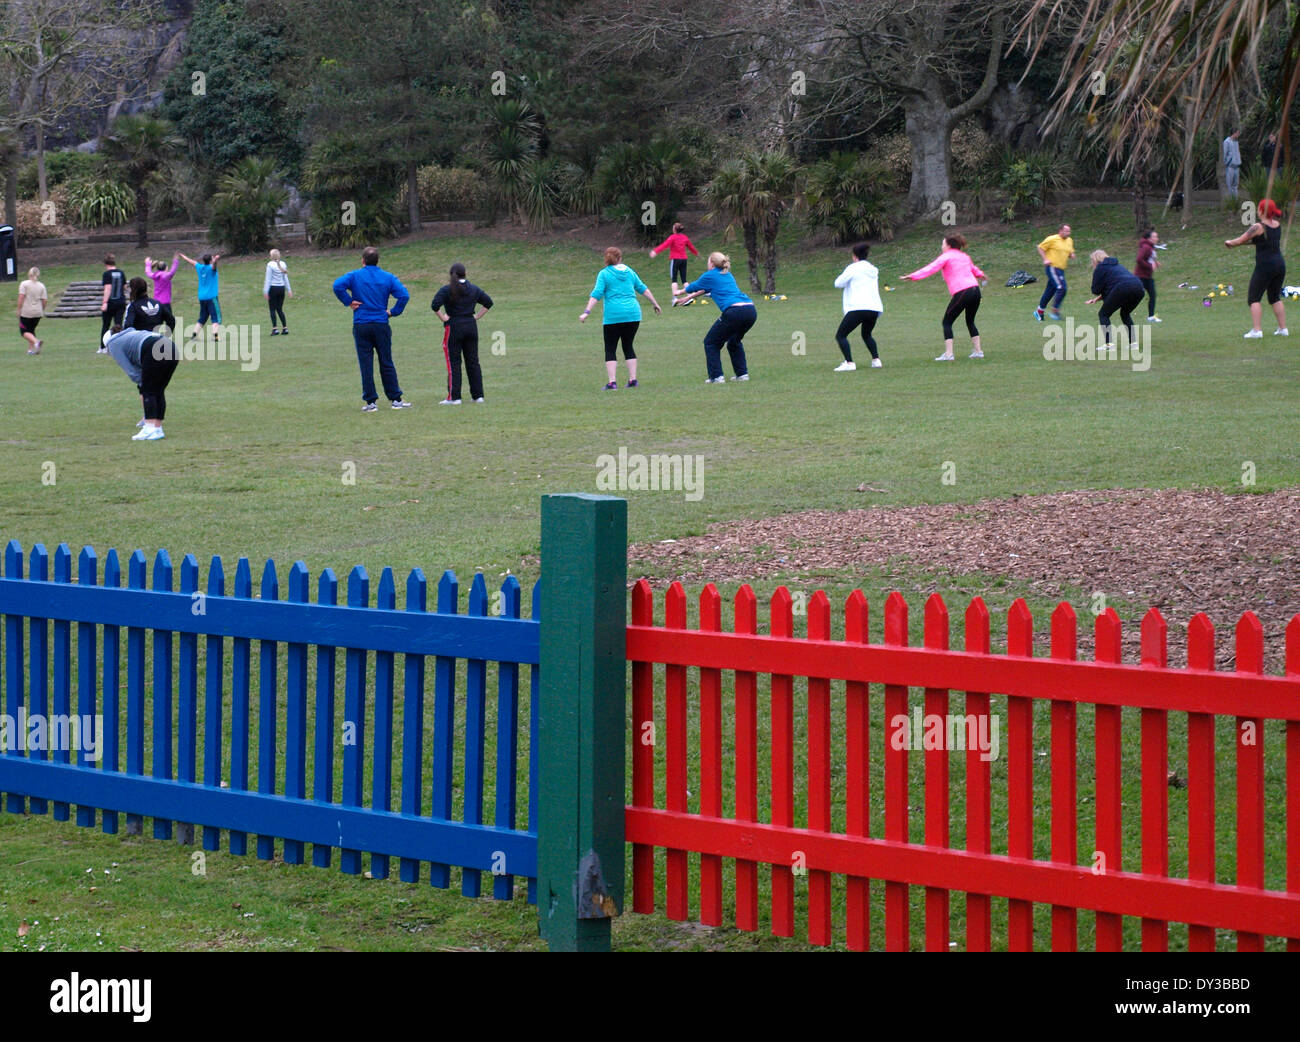 Keep fit club in the park, Plymouth, Devon, UK - Stock Image